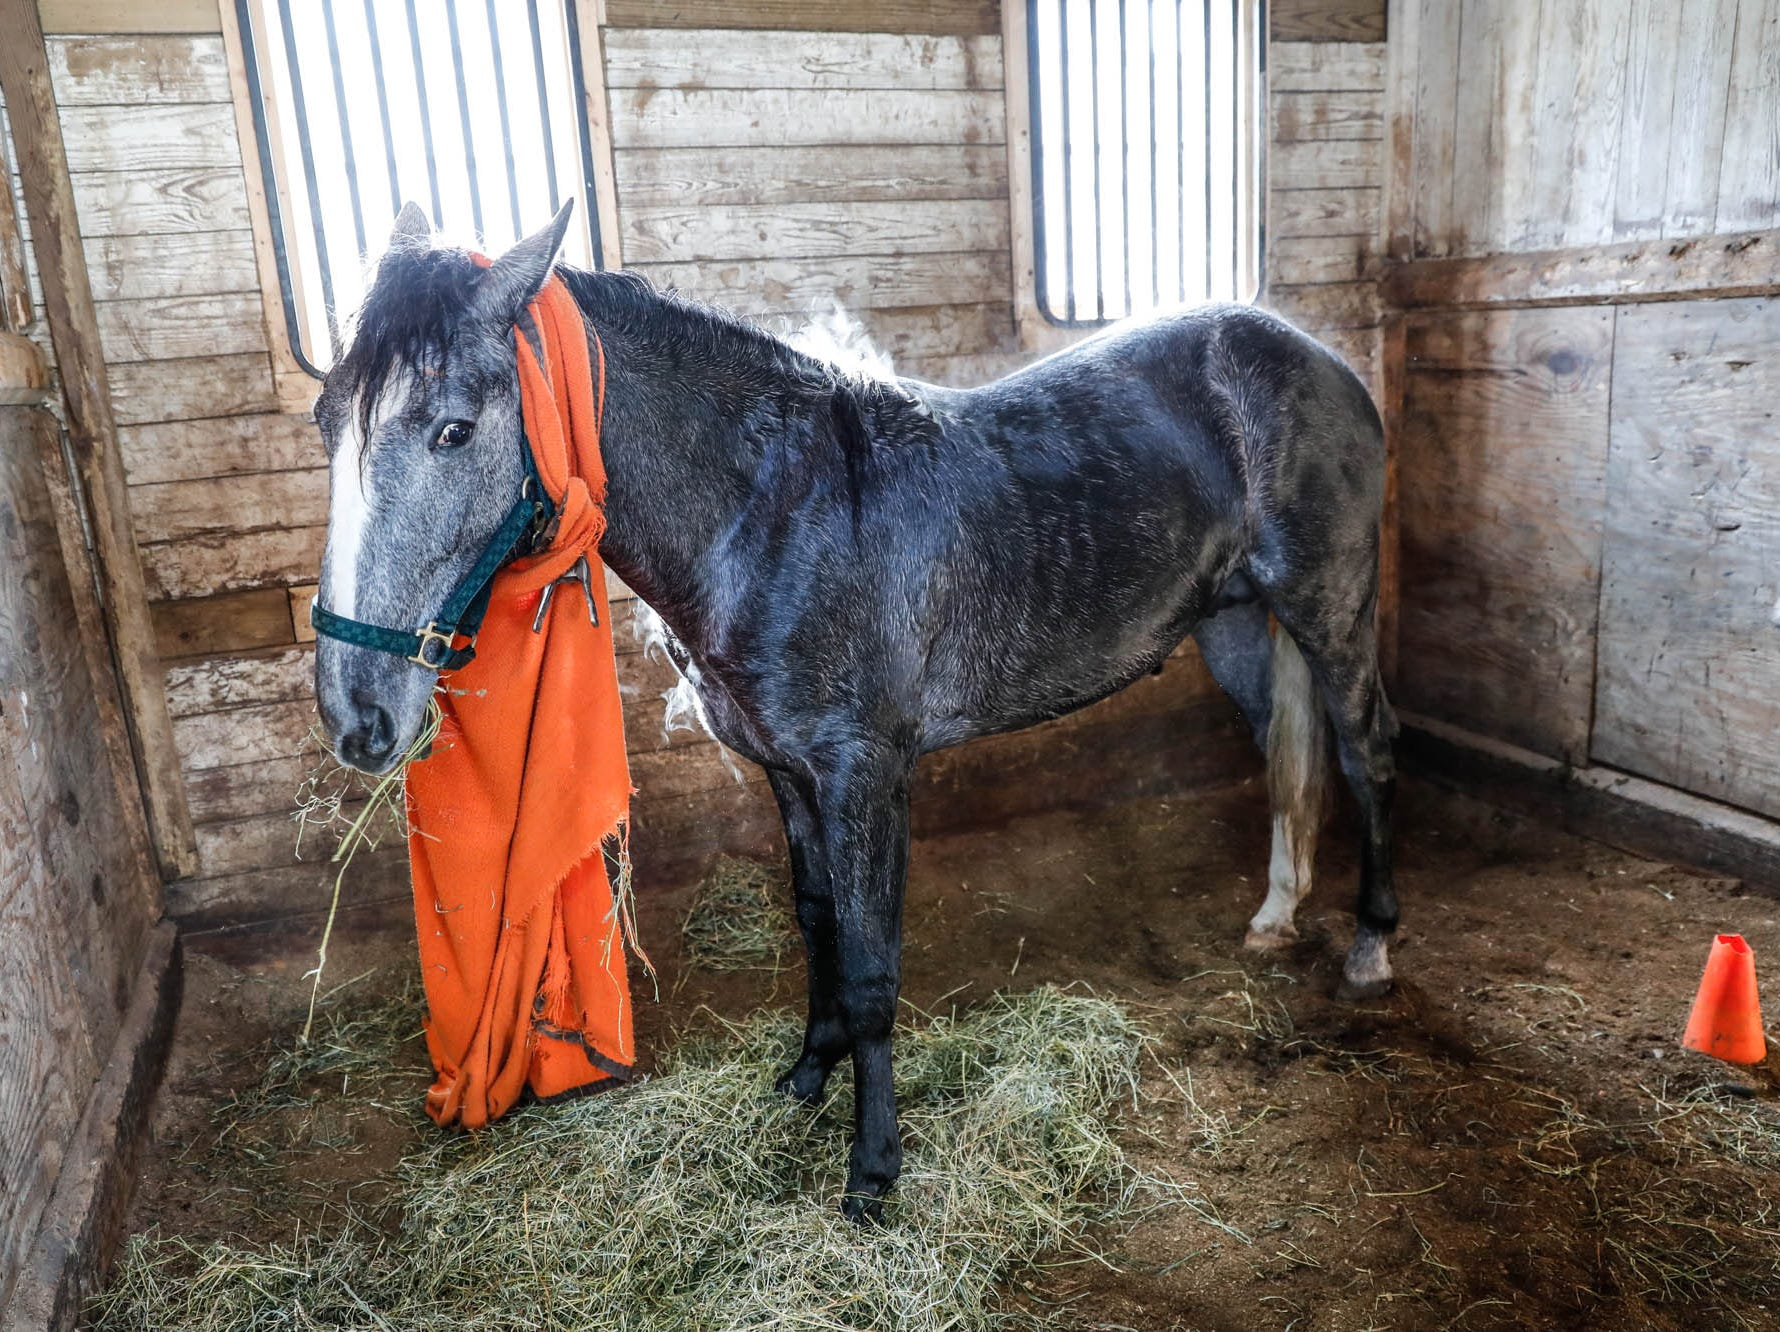 Gringo, a harness racing horse, steams after a bath on a near sixty-degree day inside the Mark P'Pool stables at the Indiana State Fairgrounds on Feb. 3, 2019. The warm temperatures were a welcome reprieve after days of sub-zero weather.